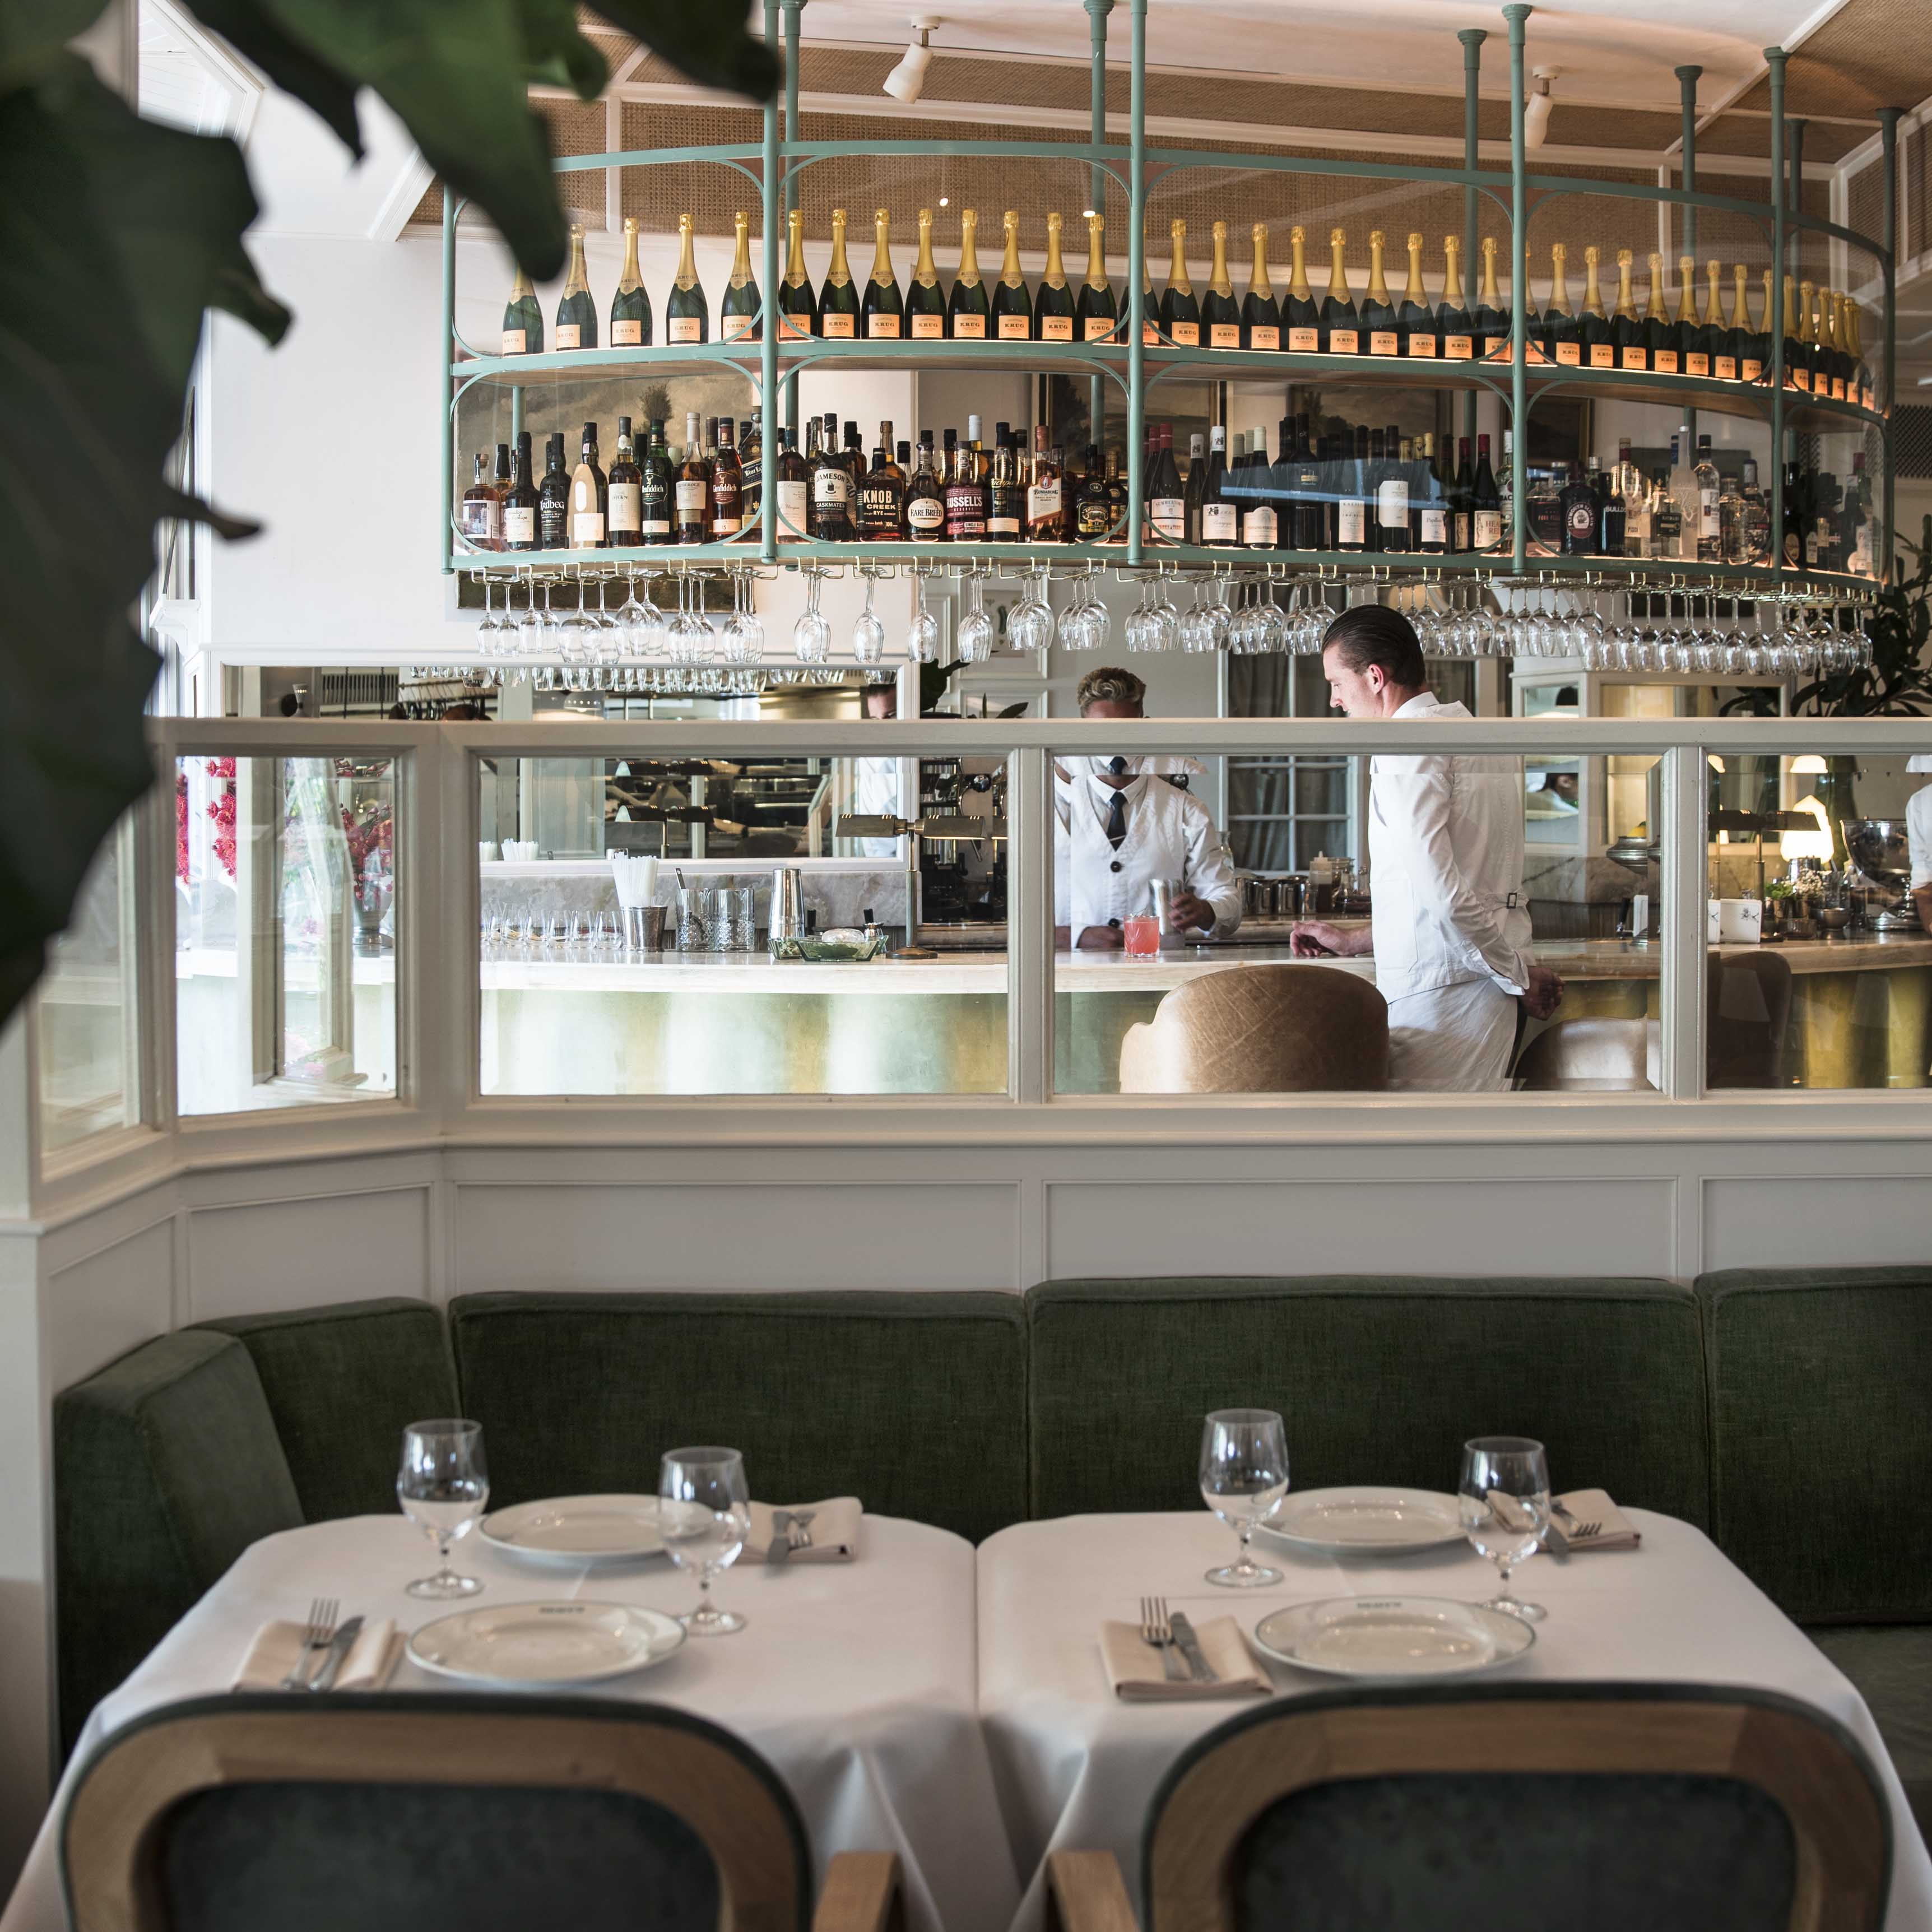 A Bar And Brasserie Reminiscent Of The Grand Hotel Dining Rooms 1930s With Relaxed Air Sydneys Northern Beaches